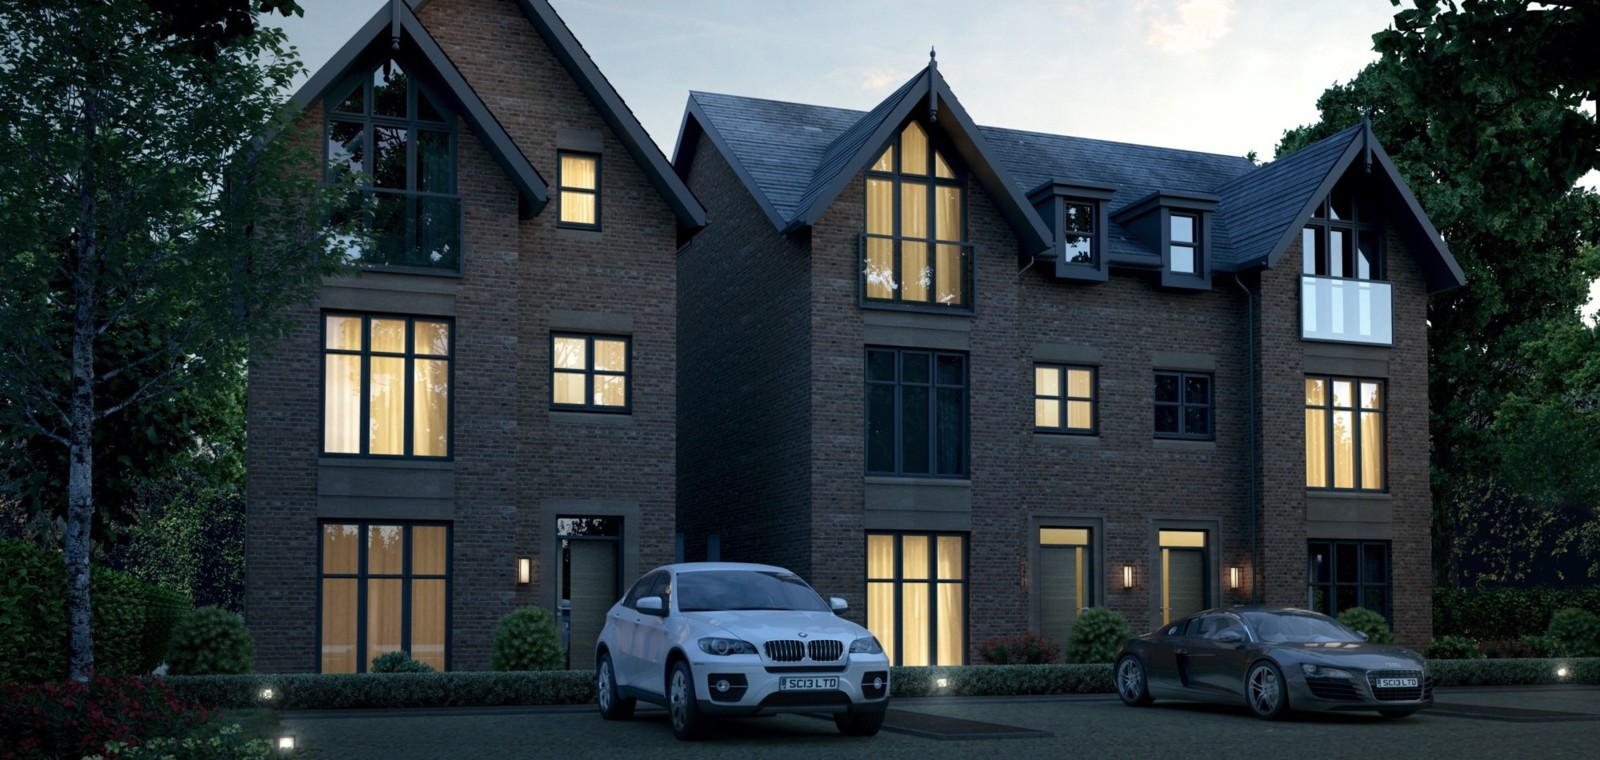 Luxury Developer, Cheshire, Manchester, Property Developer,Cheshire, Manchester, Luxury Homes, Cheshire, Manchester